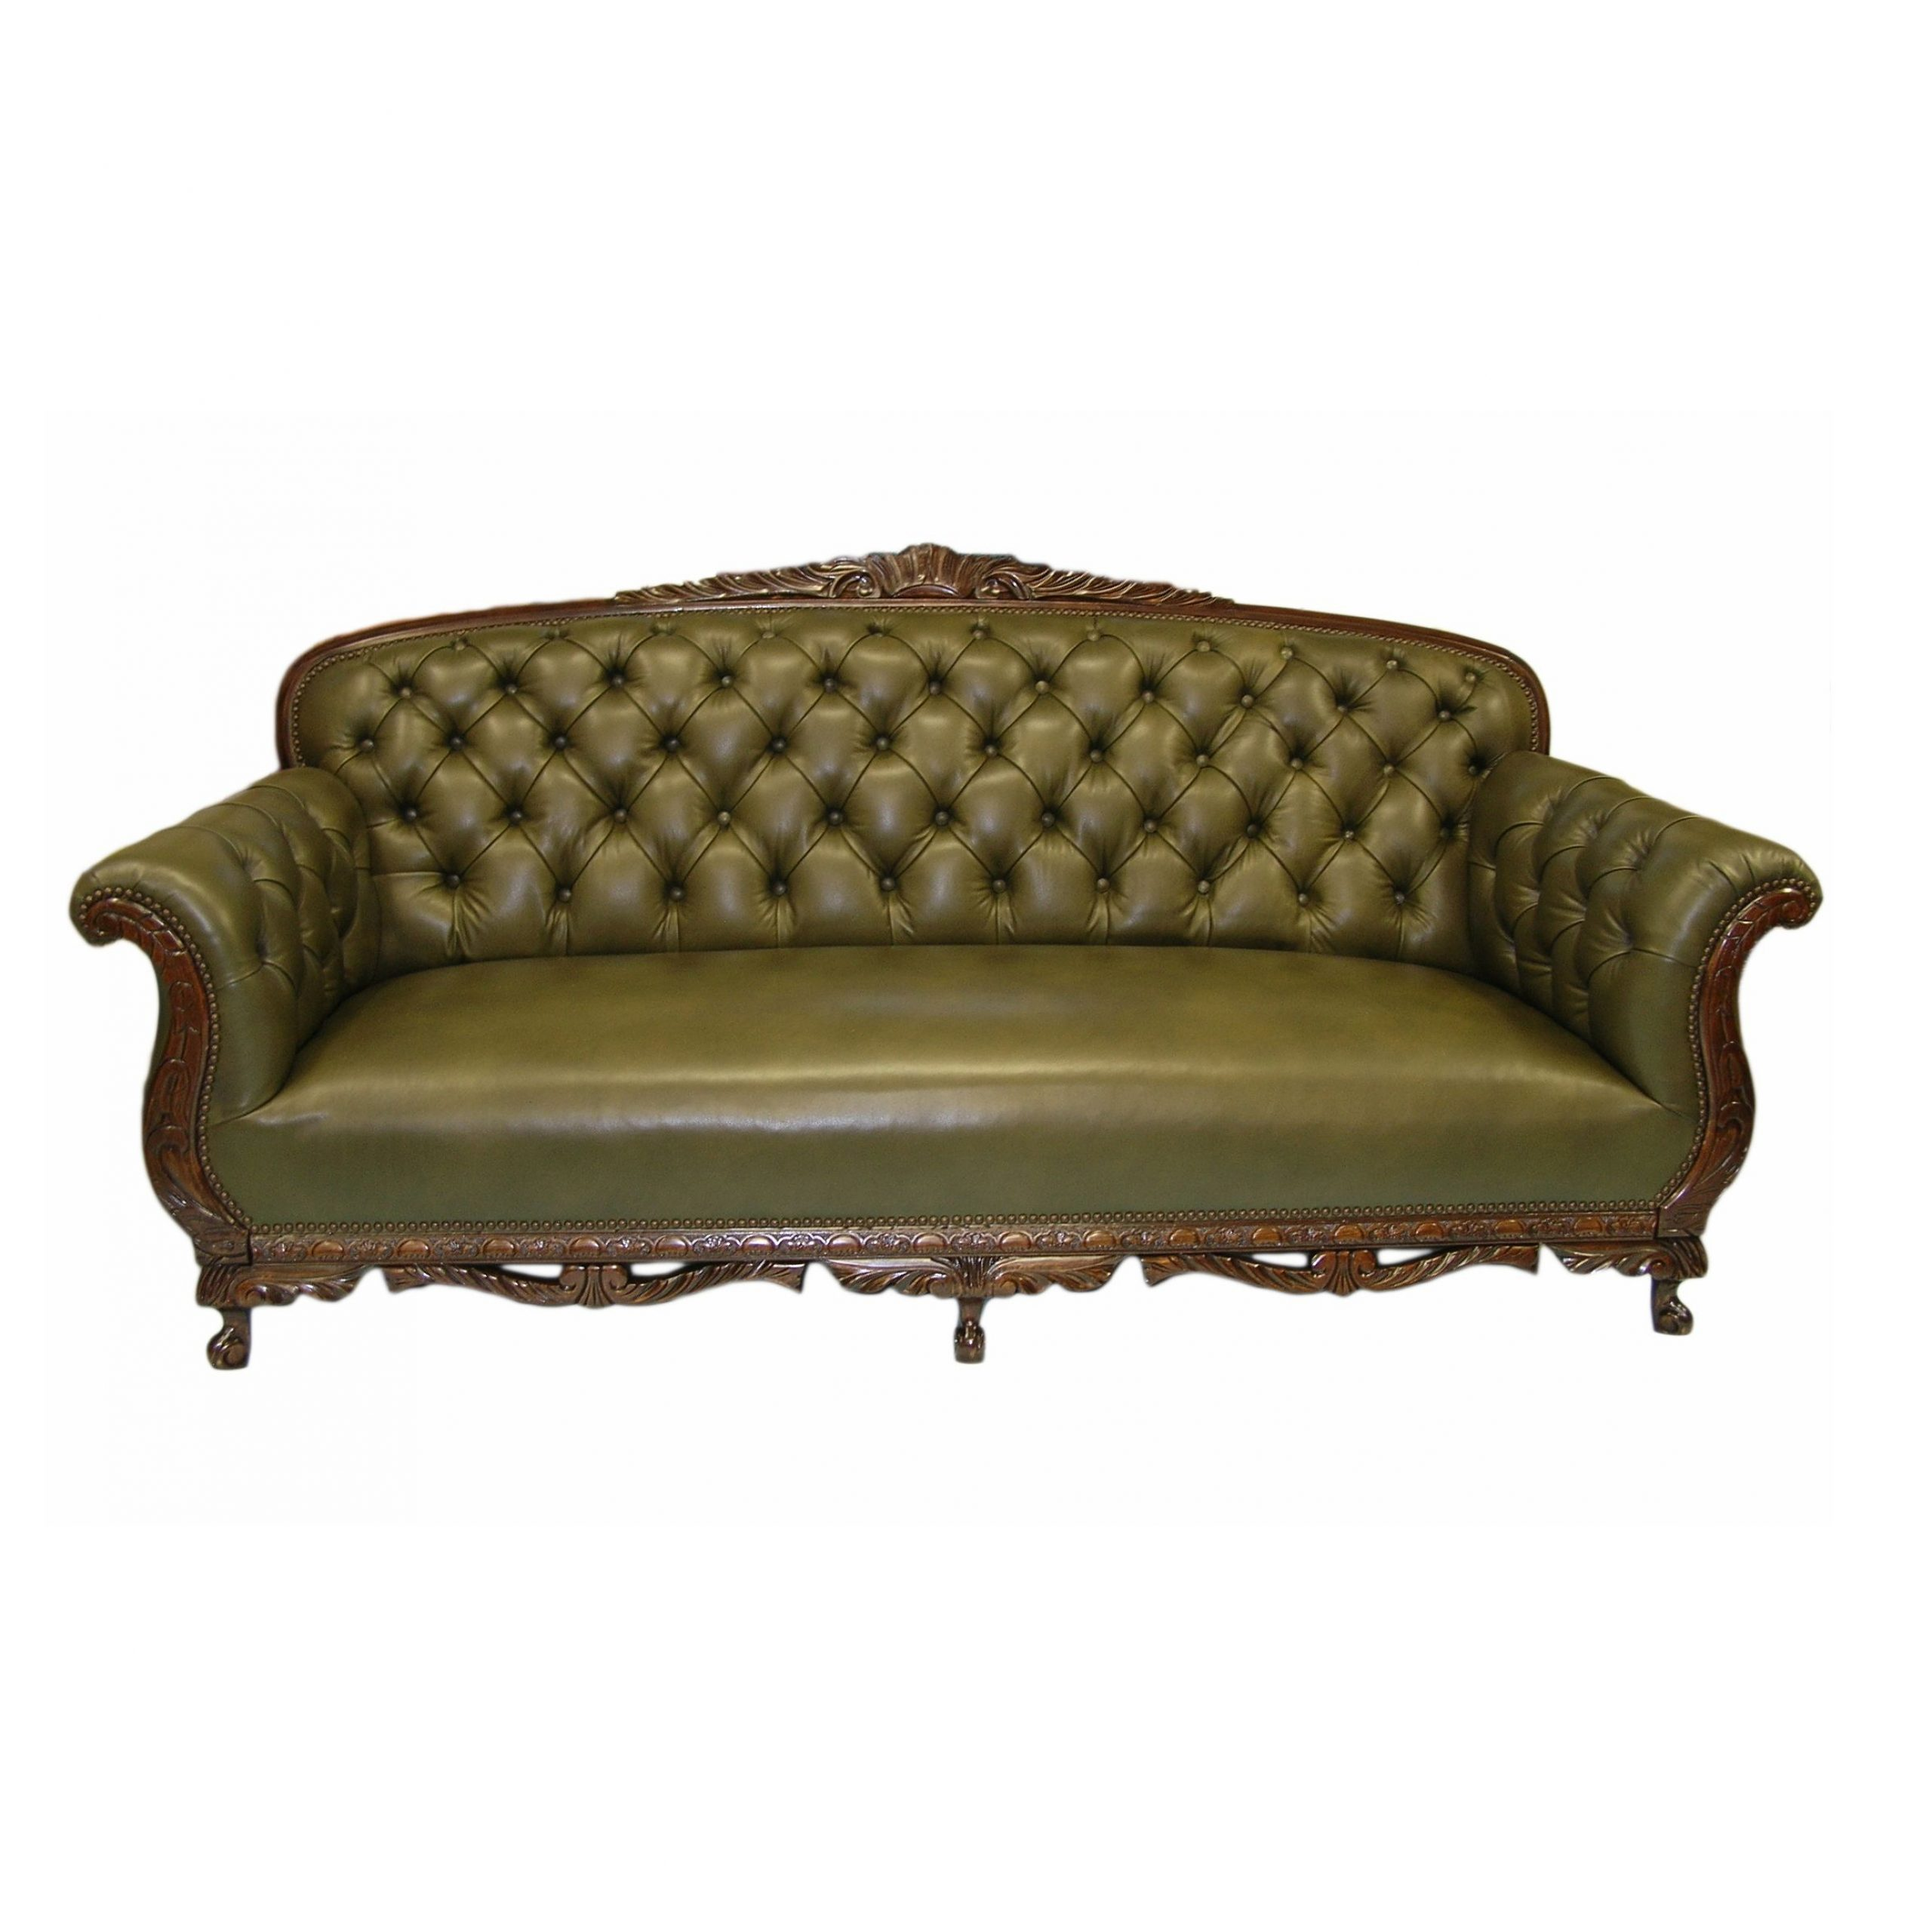 Custom Sofa – Soldclassic Elegance, Llc   Custommade Within Custom Made Sectional Sofas (View 9 of 15)